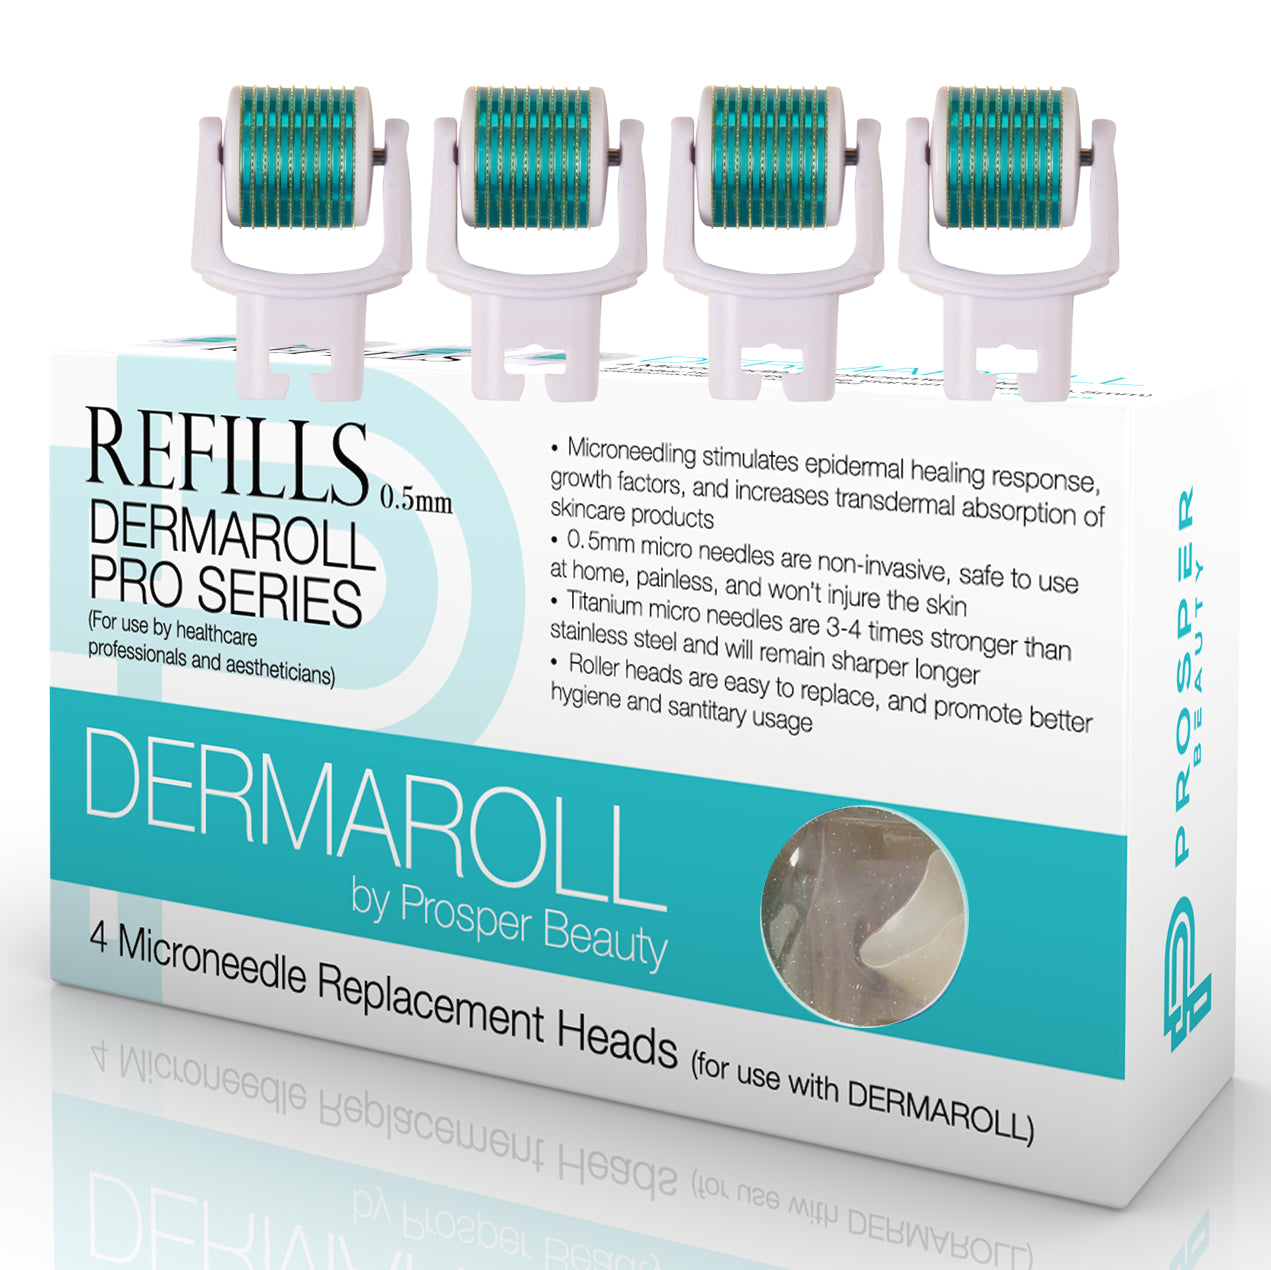 DERMAROLL REFILLS 0.5mm by Prosper Beauty (4 Microneedle Replacement Heads - 0.5mm)